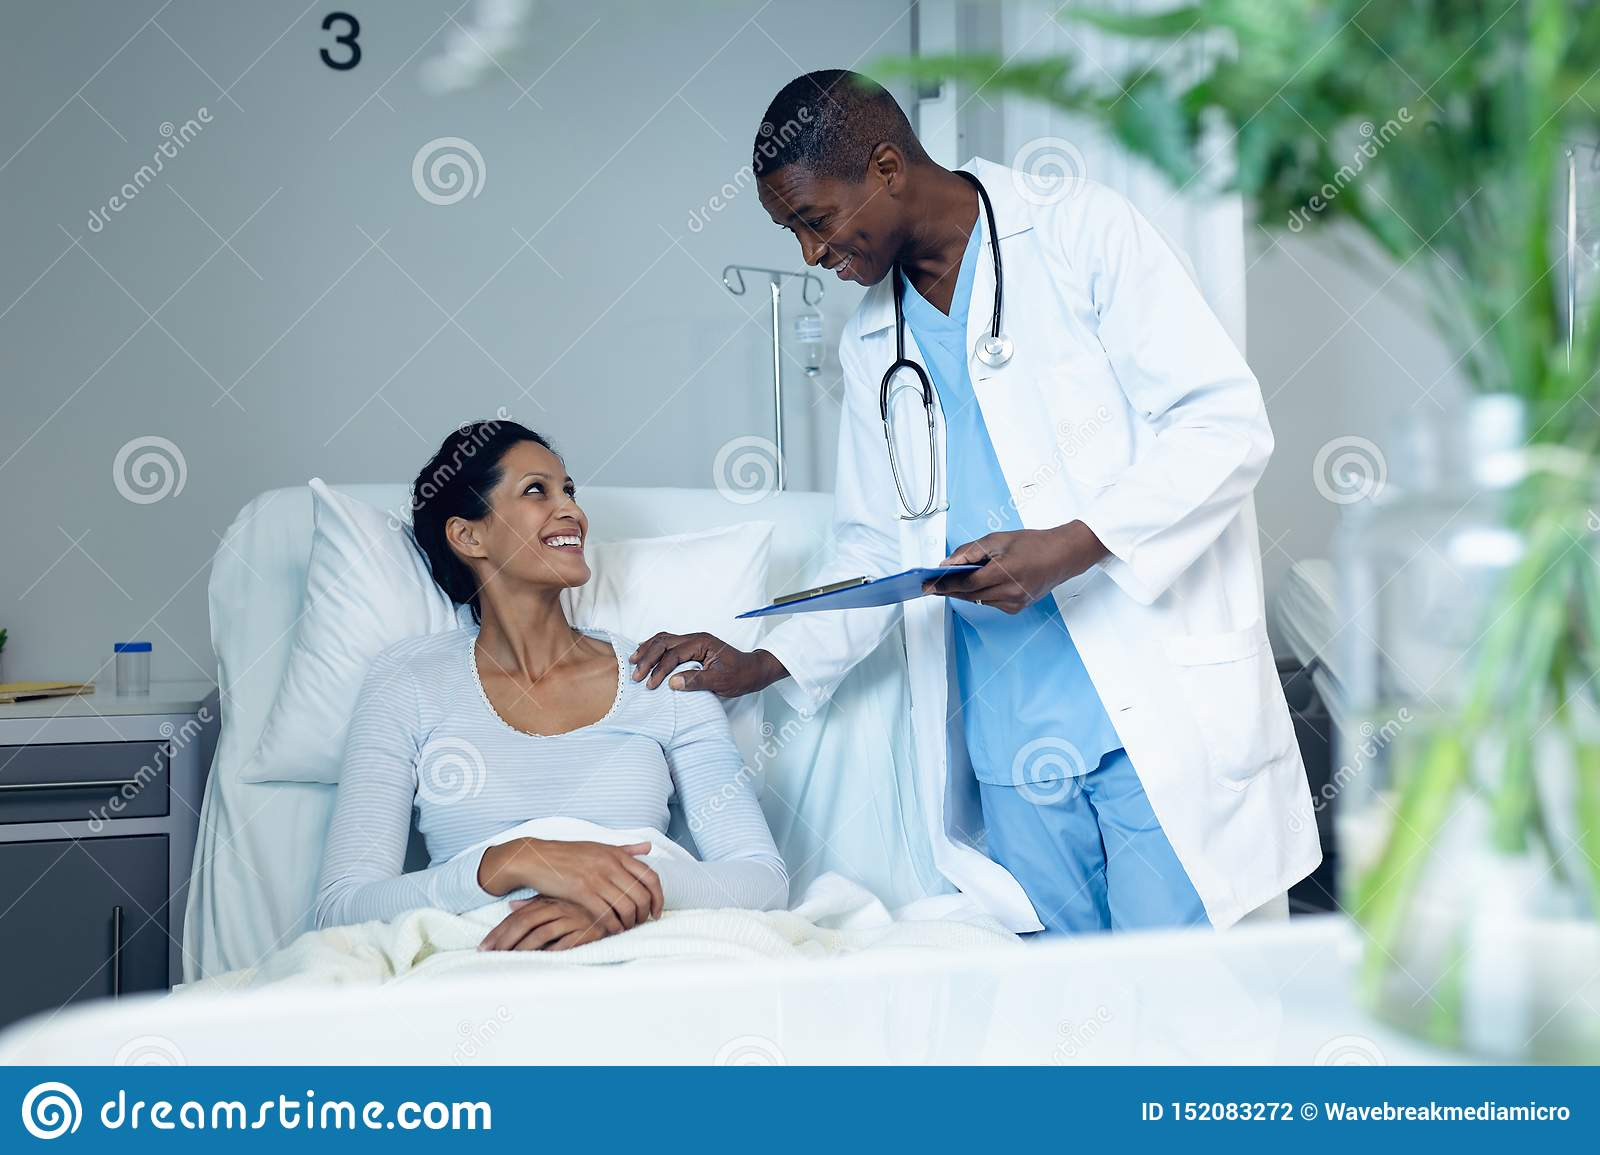 Male doctor interacting with female patient in the ward